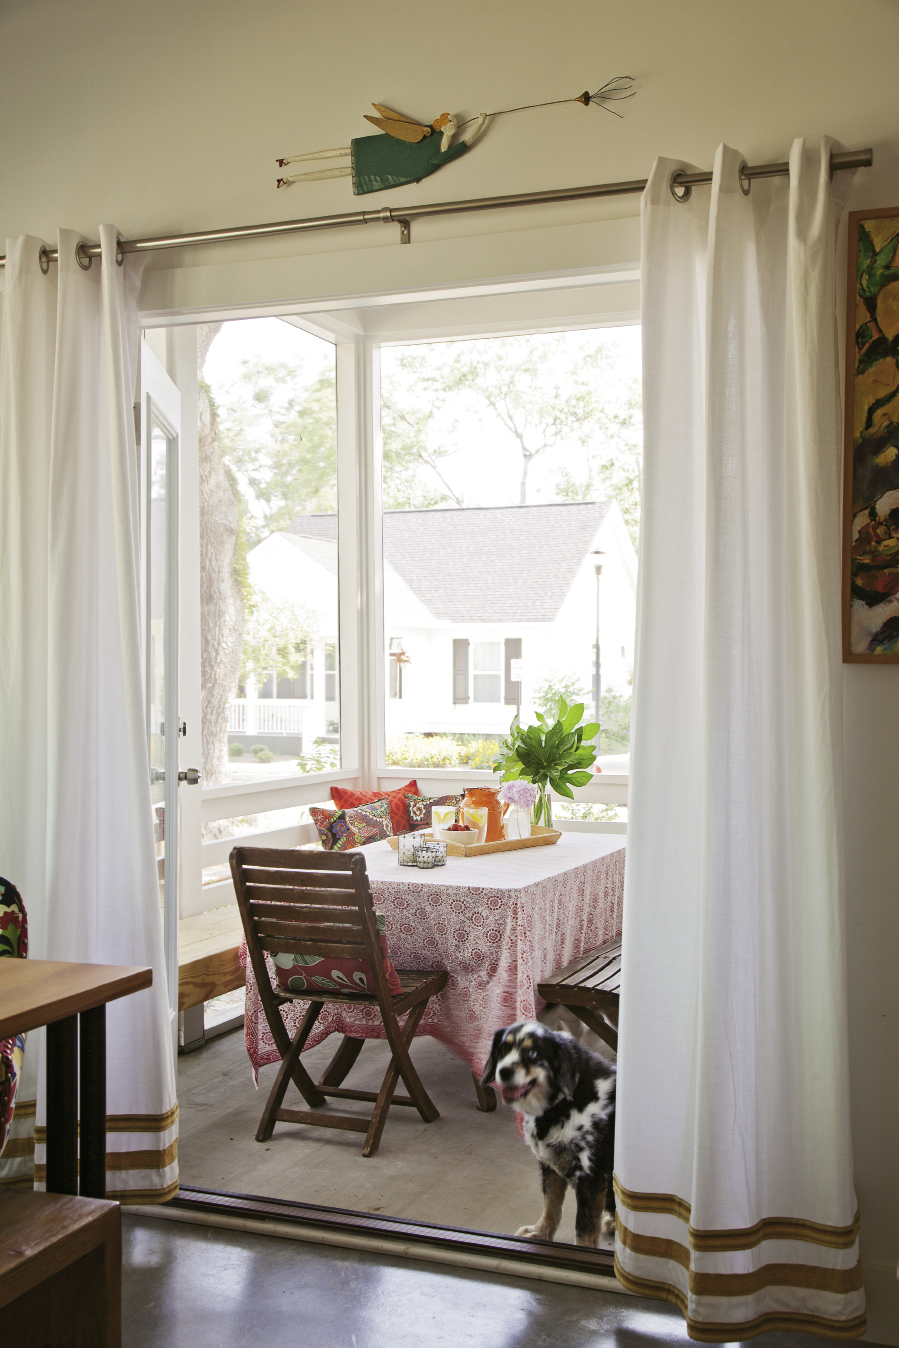 Textiles—some new, others collected over time—brighten the screened-in porch.